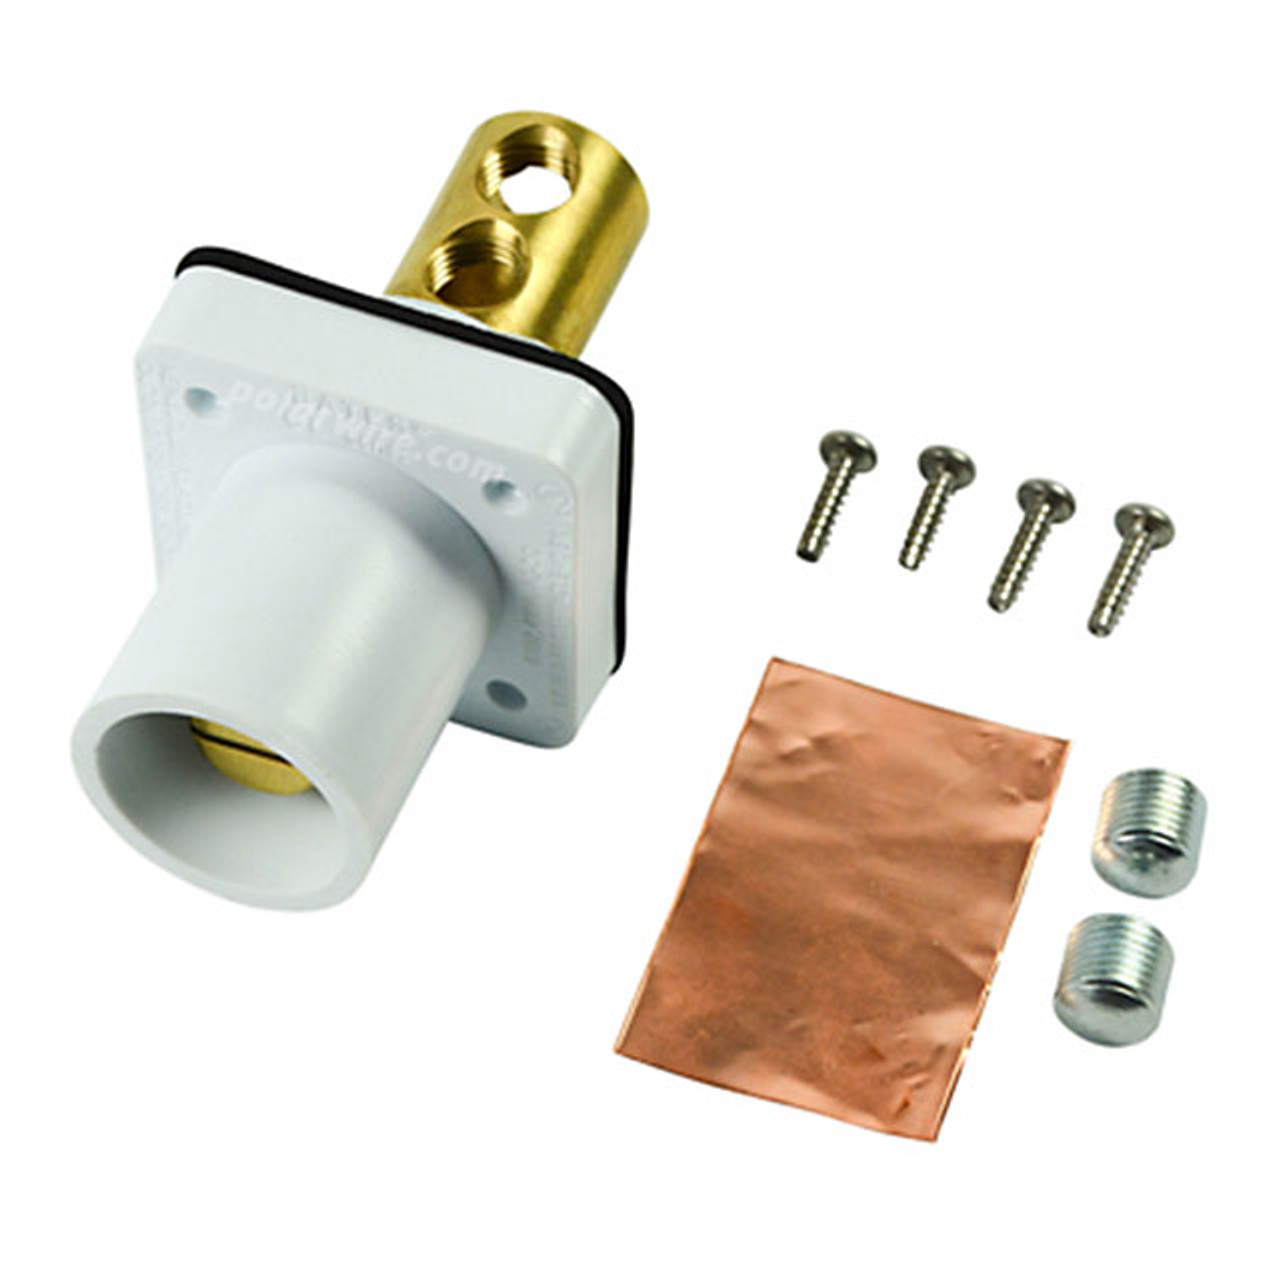 CAM LOCK 400A PANEL MALE WHITE SET SCREW 2/0-4/0